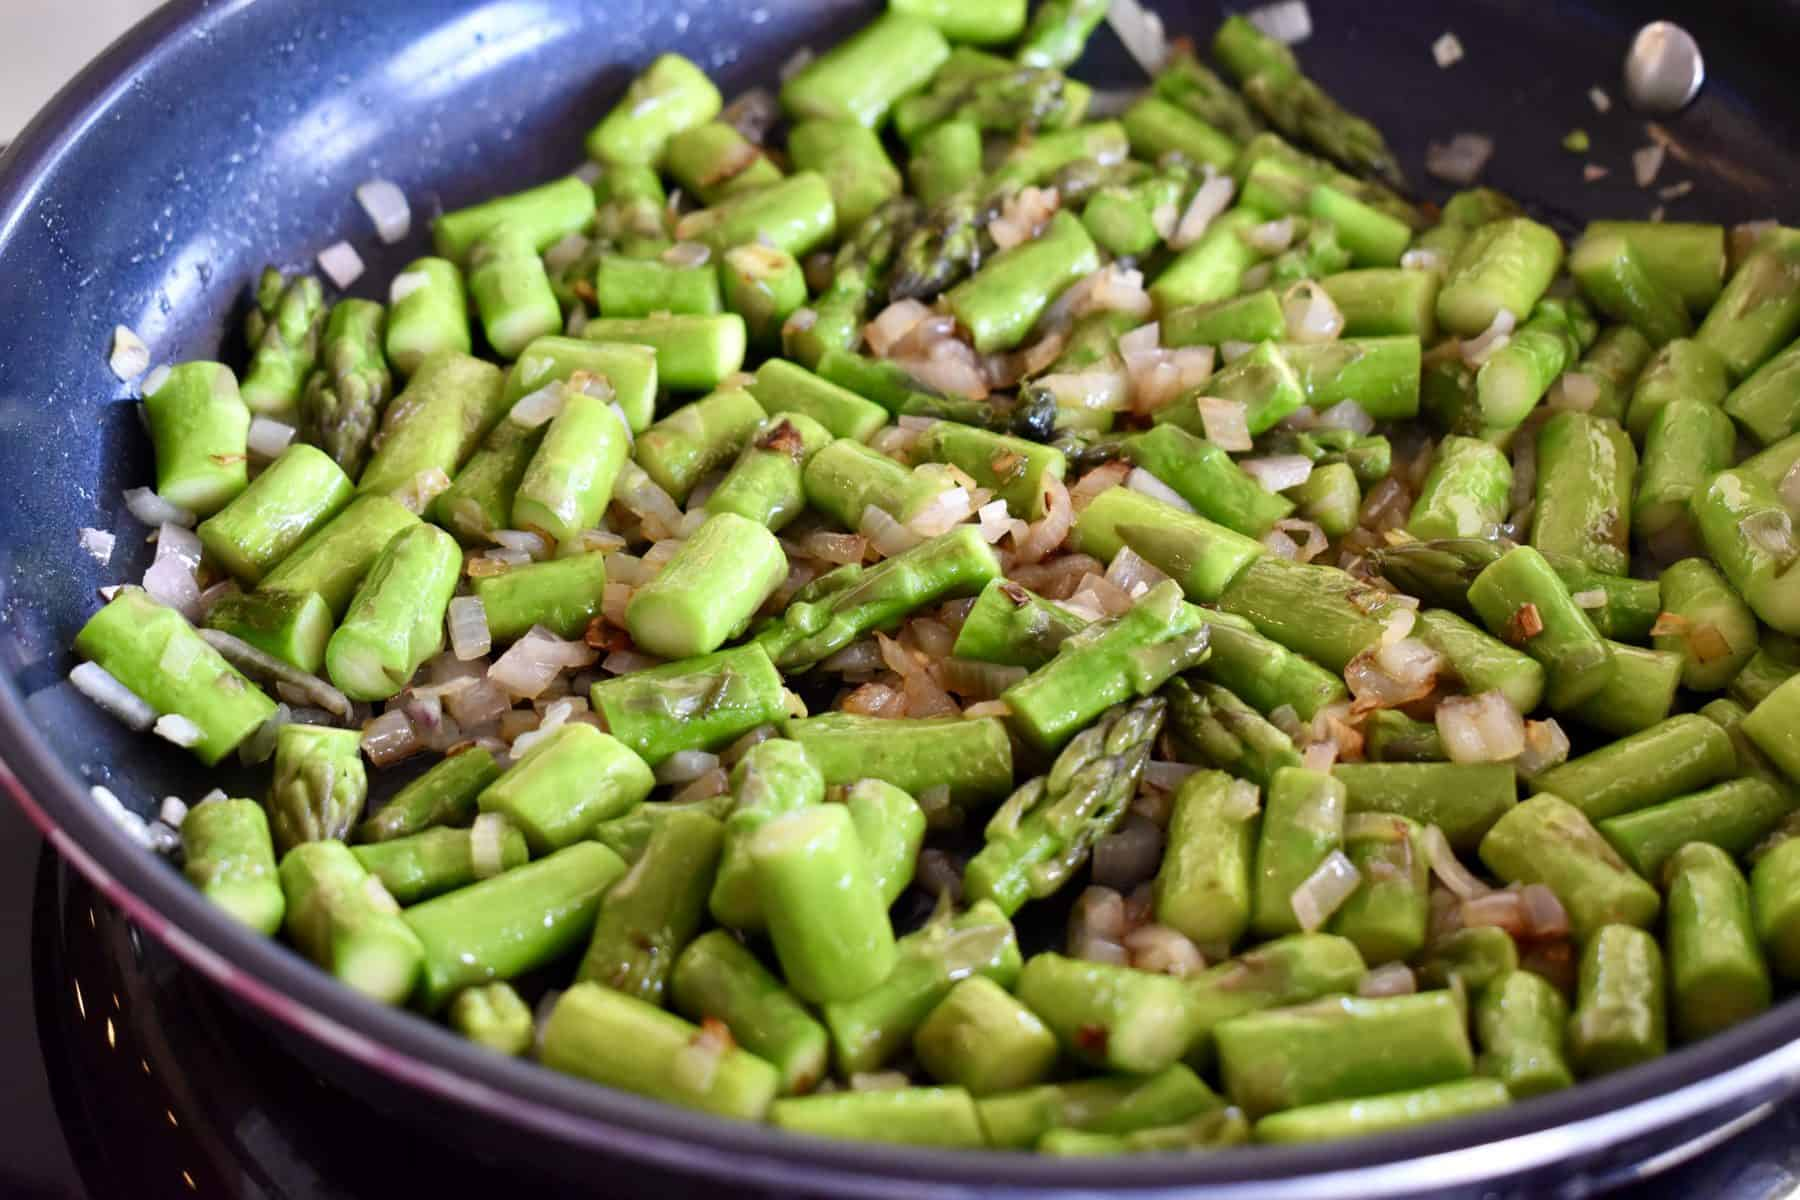 cooked asparagus and shallots in a pan.